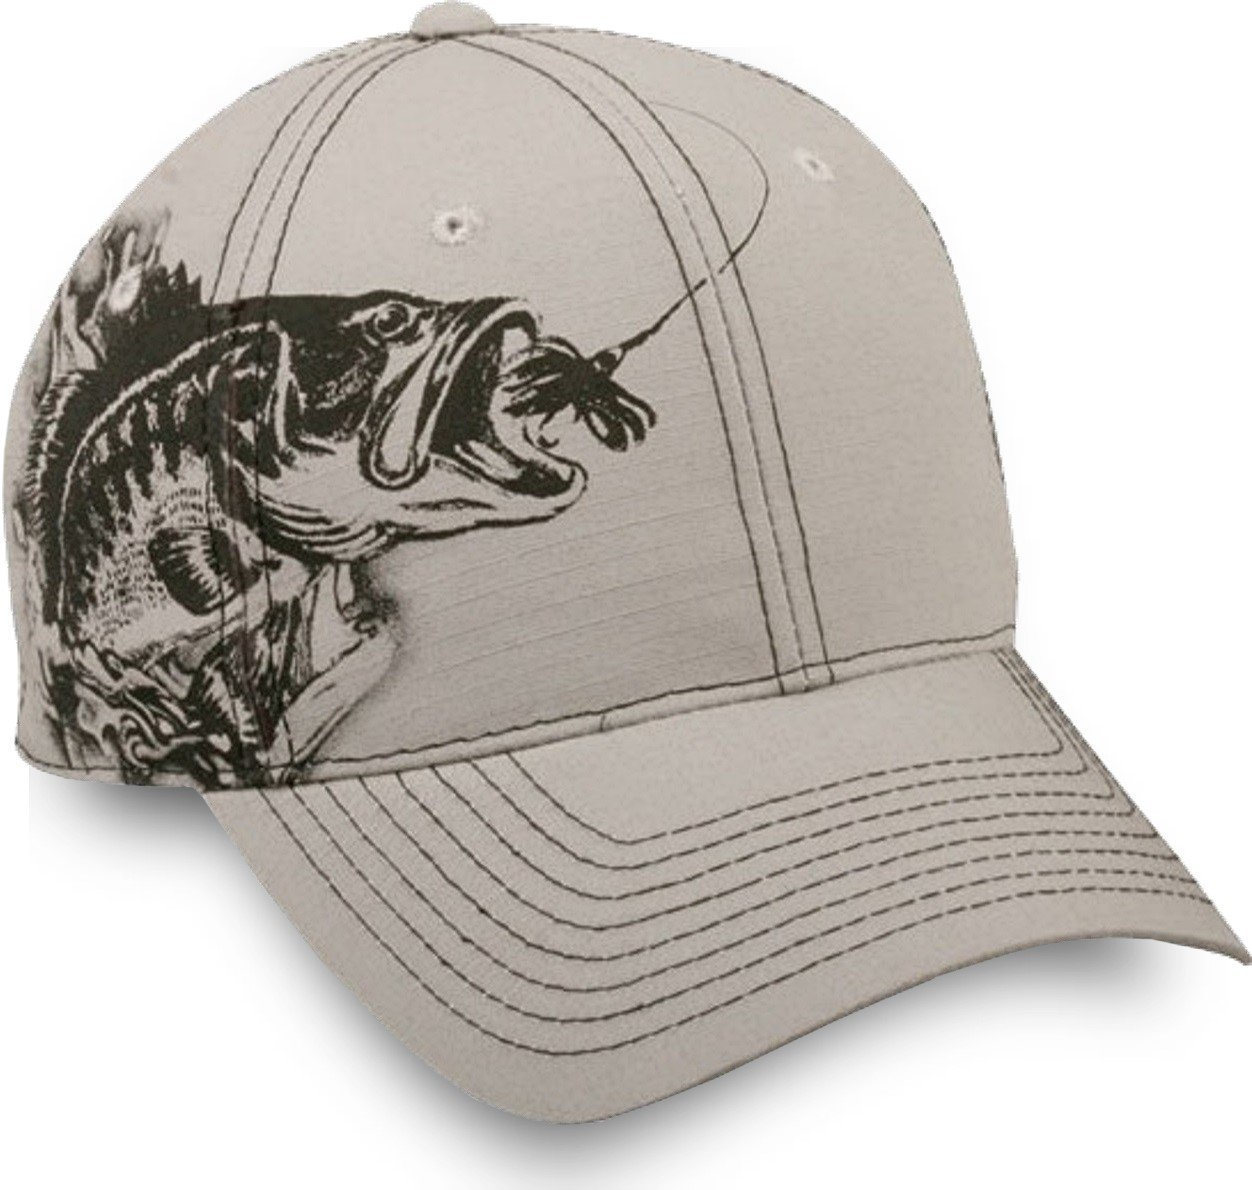 Fish For Bass In The Edge Cap